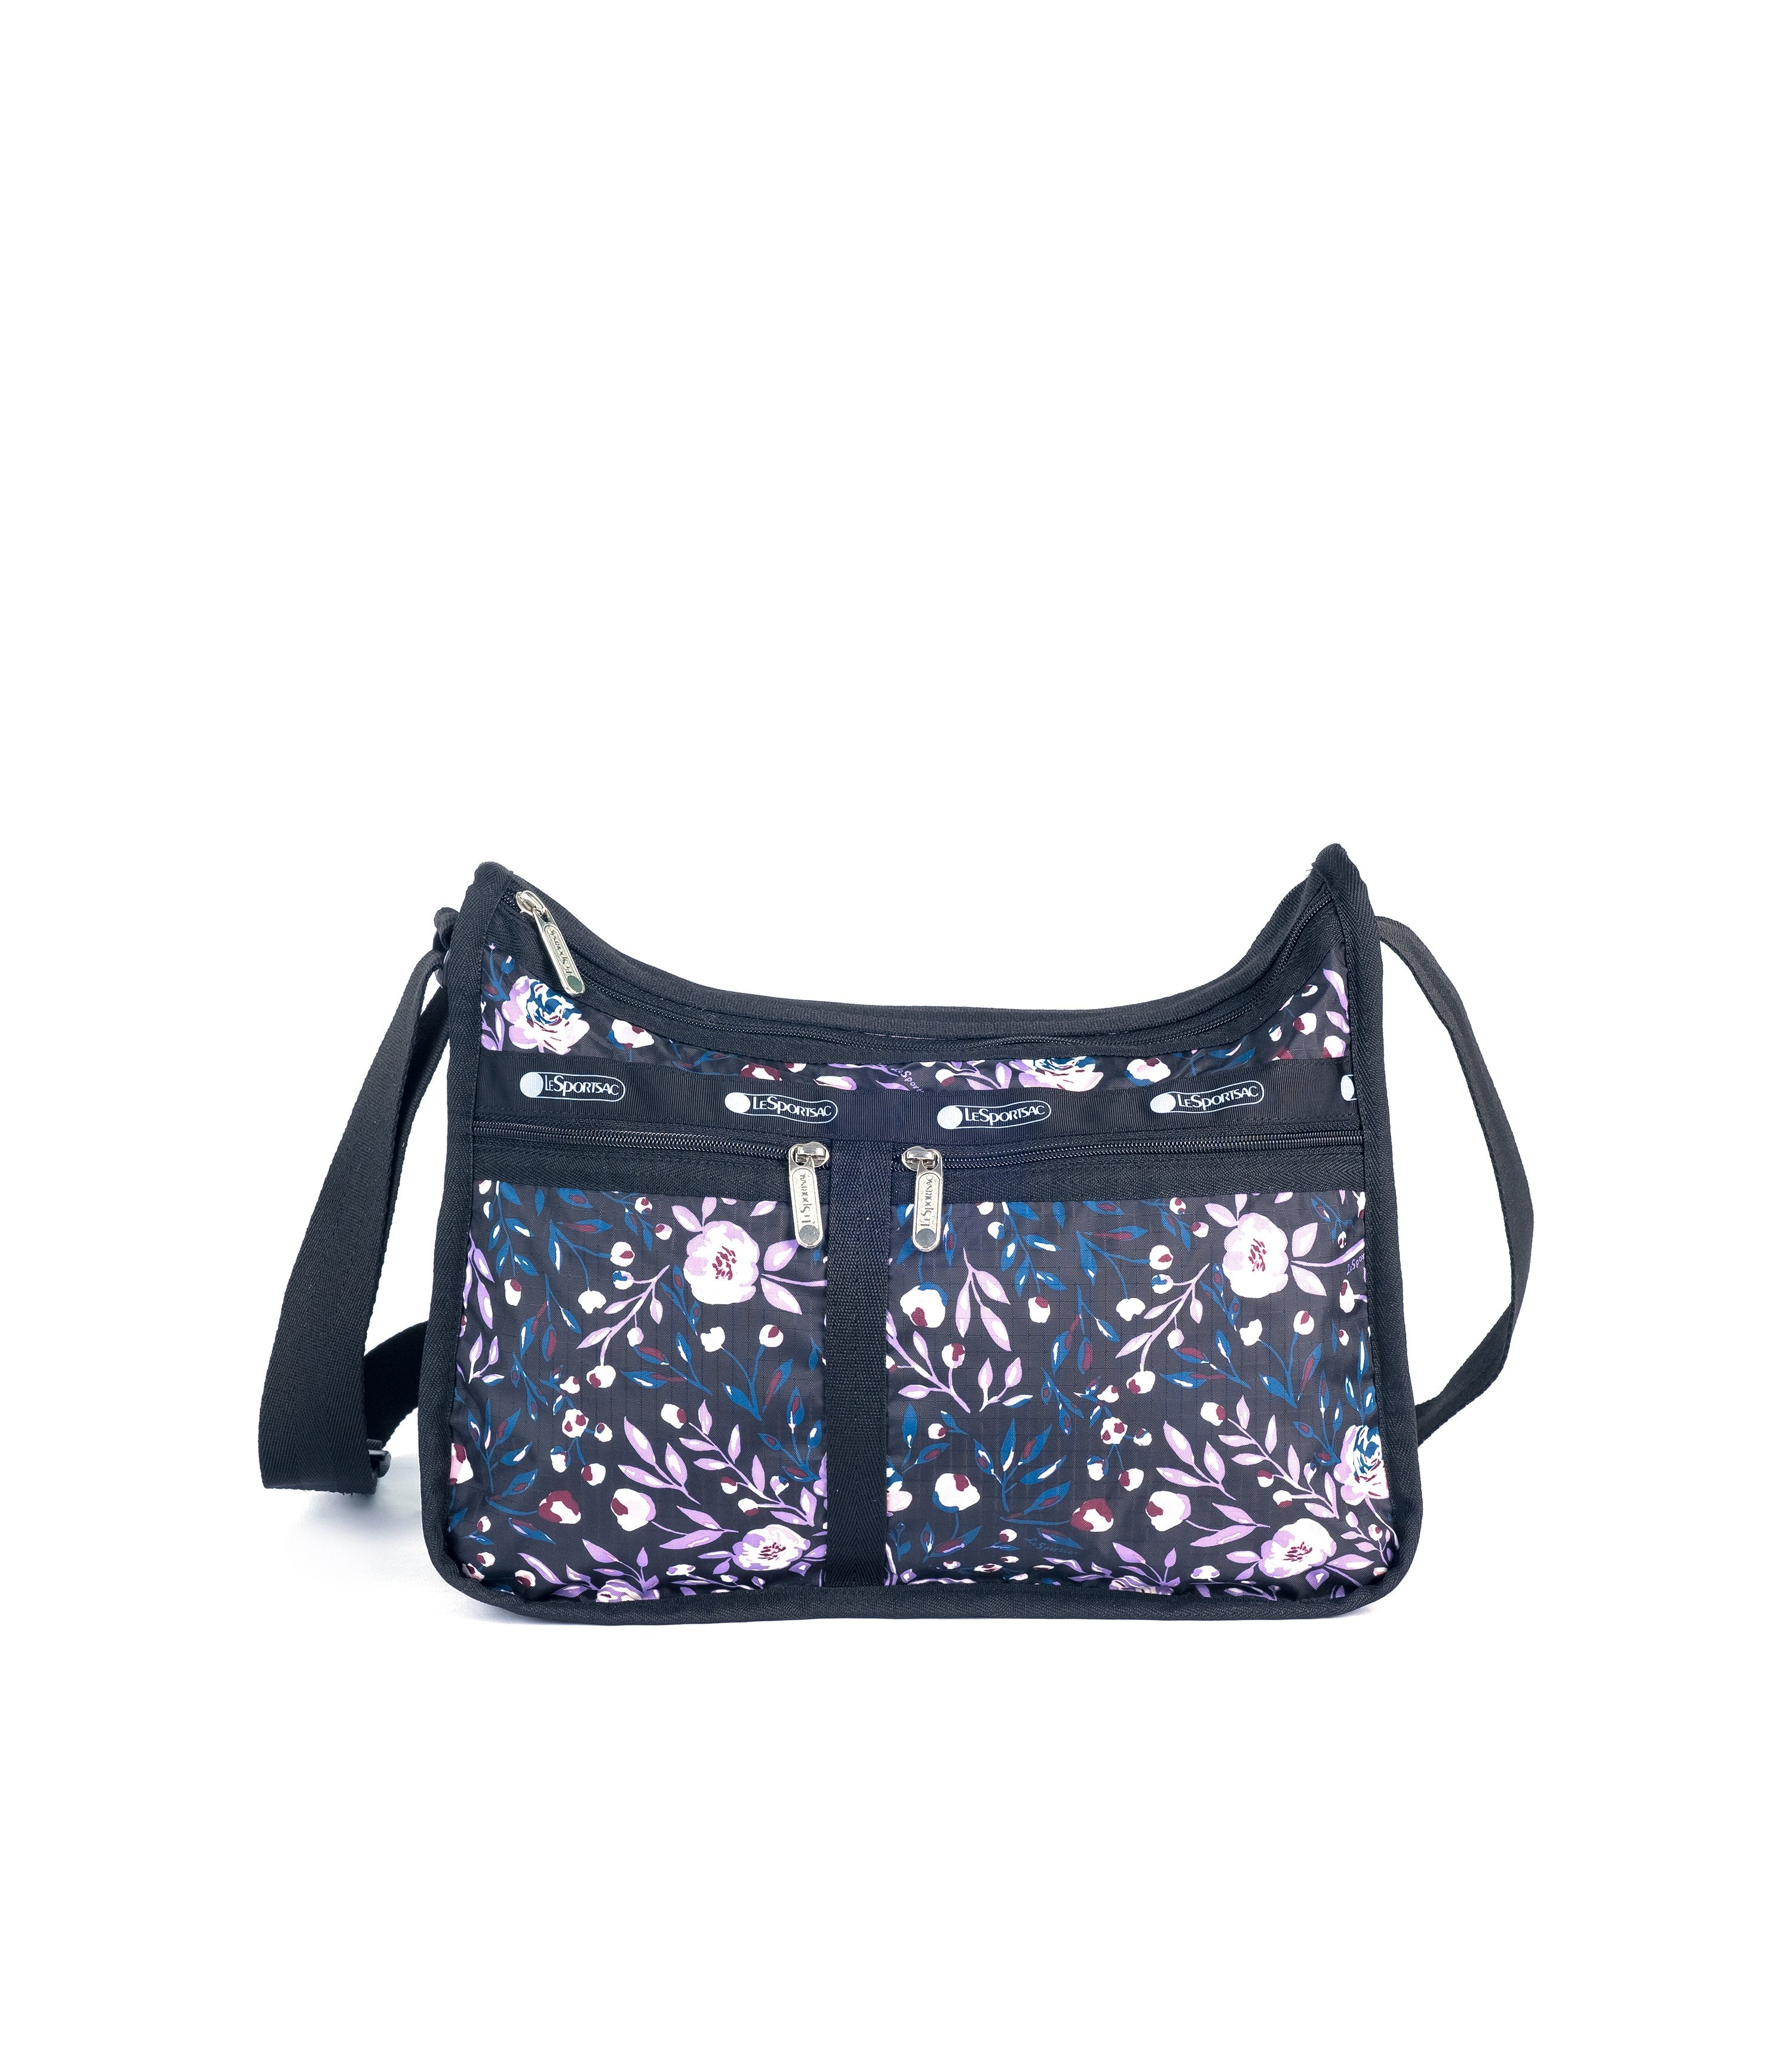 LeSportsac - Deluxe Everyday Bag - Handbags - Dancing Roses Noir print